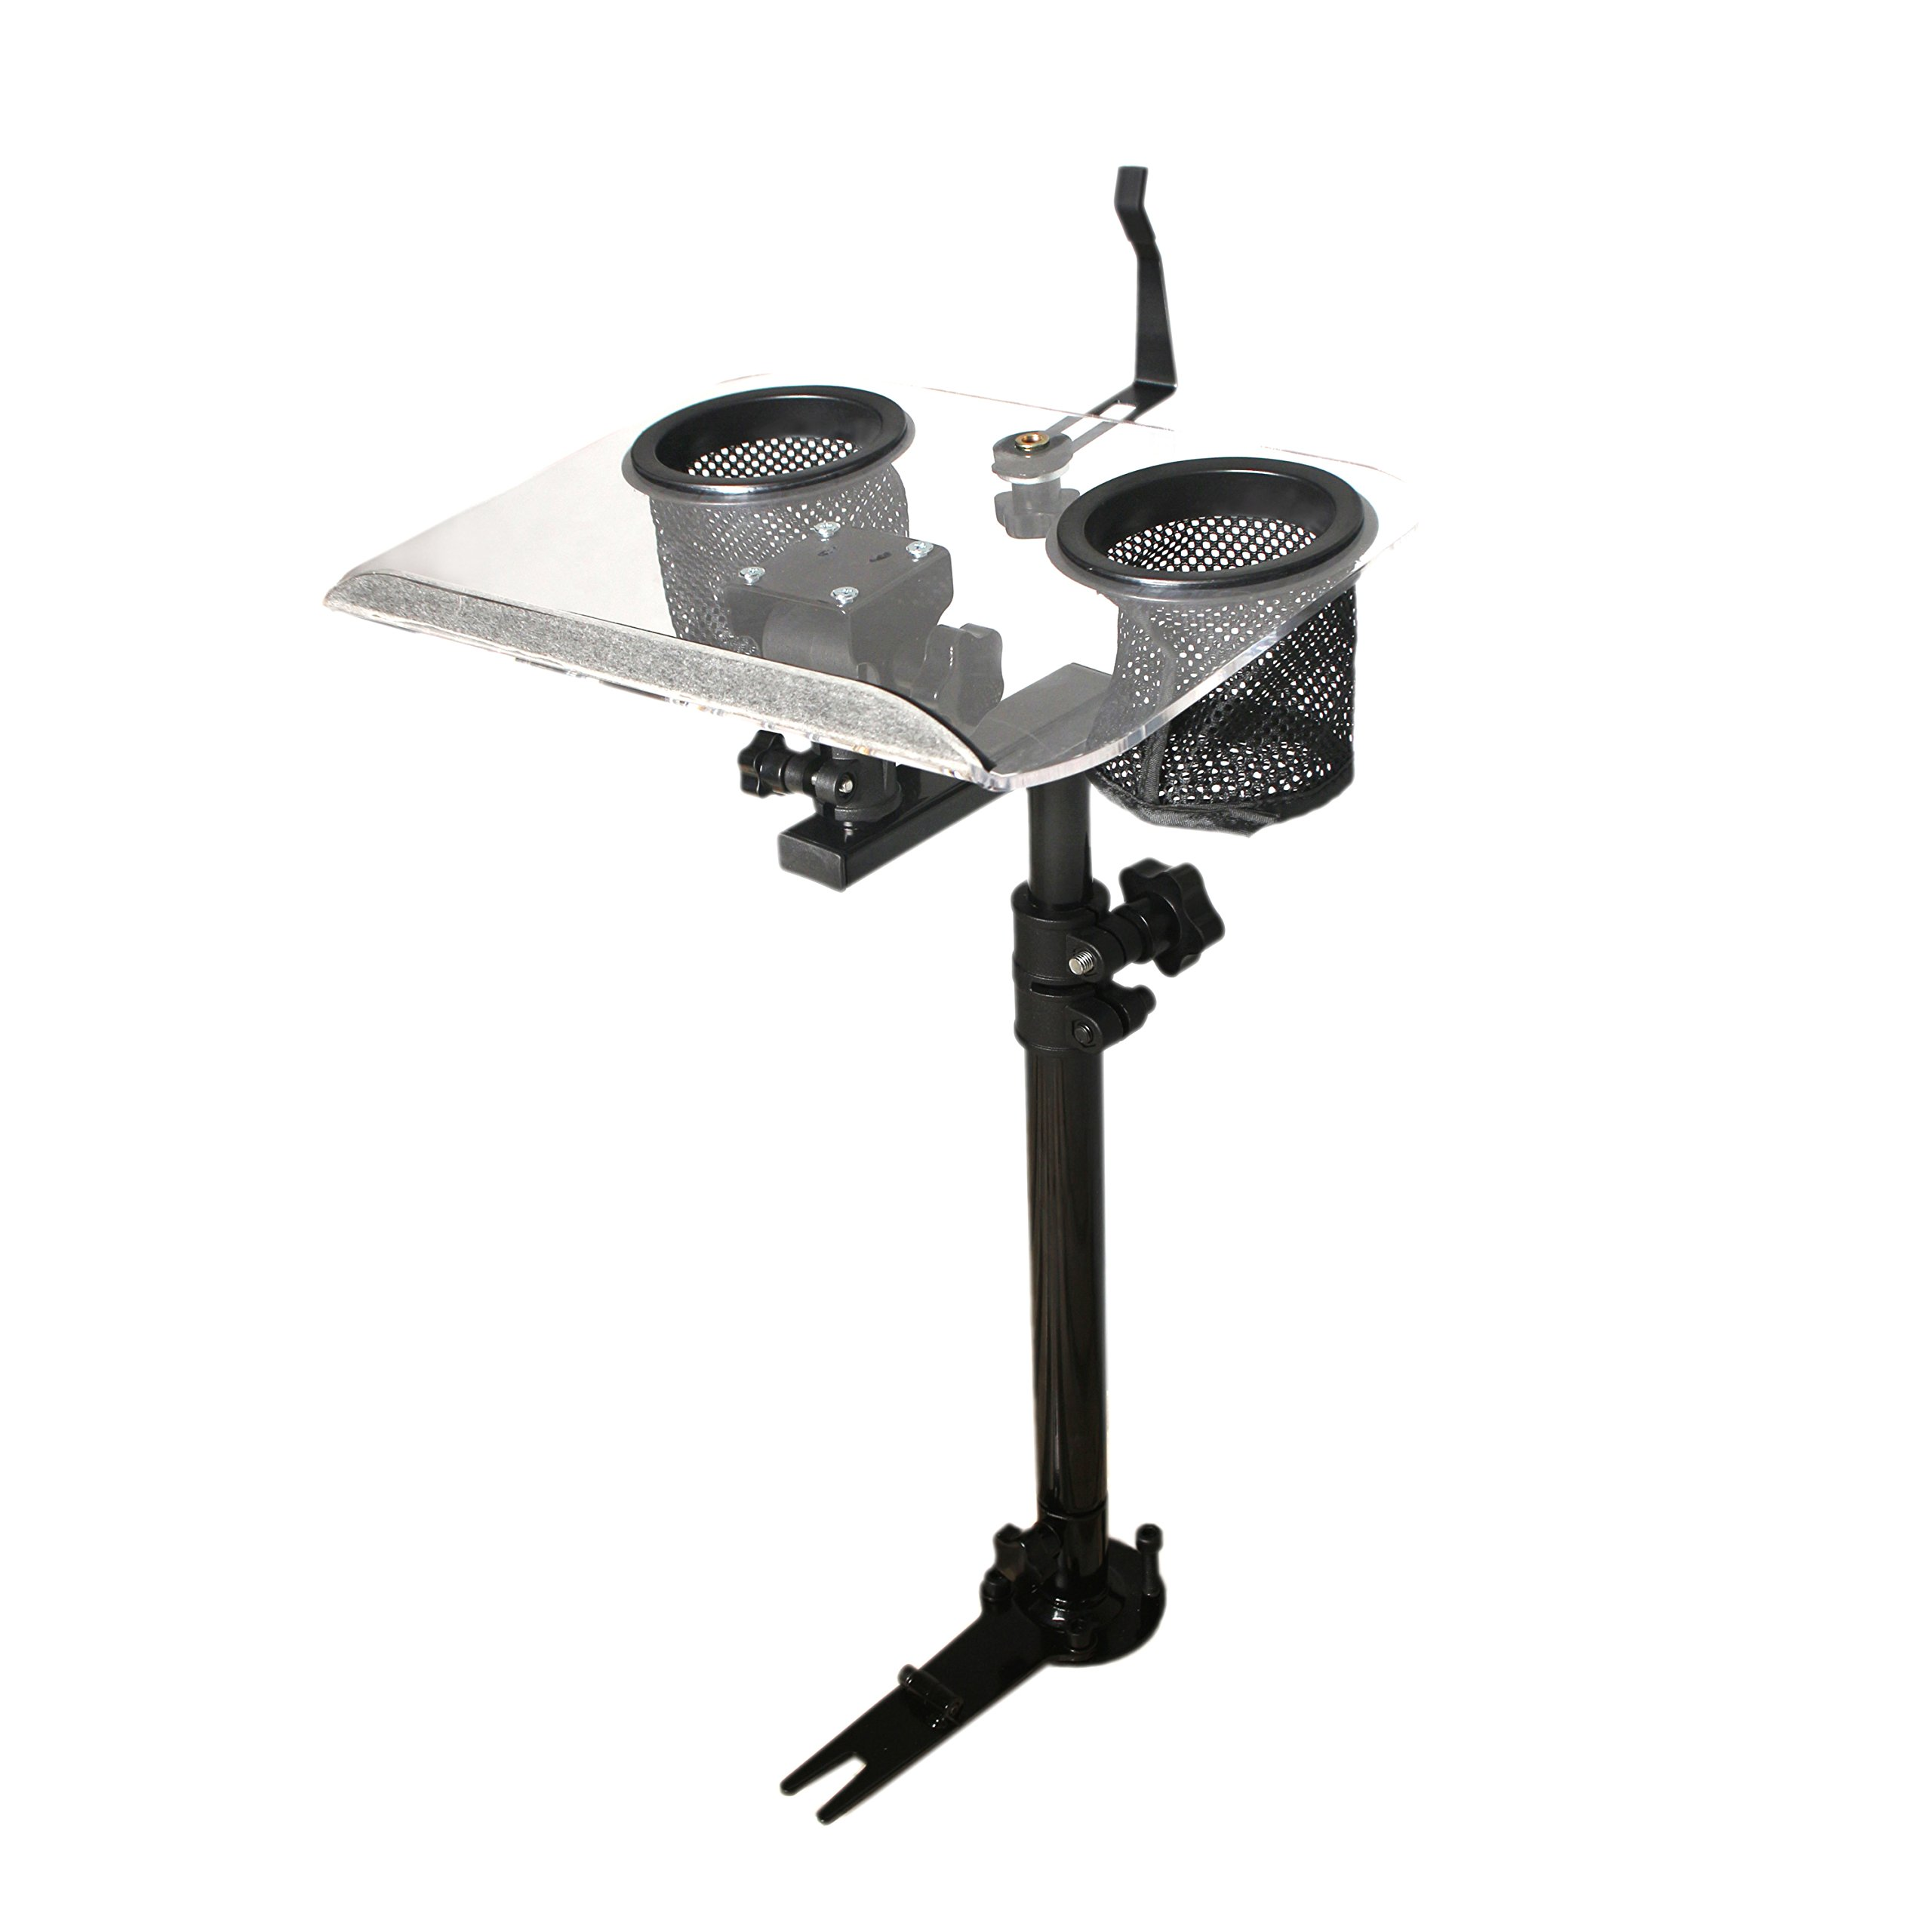 AA-Products K005-A1 Auto Laptop Mount Truck Vehicle Netbook Stand Holder with Non-Drilling Bracket